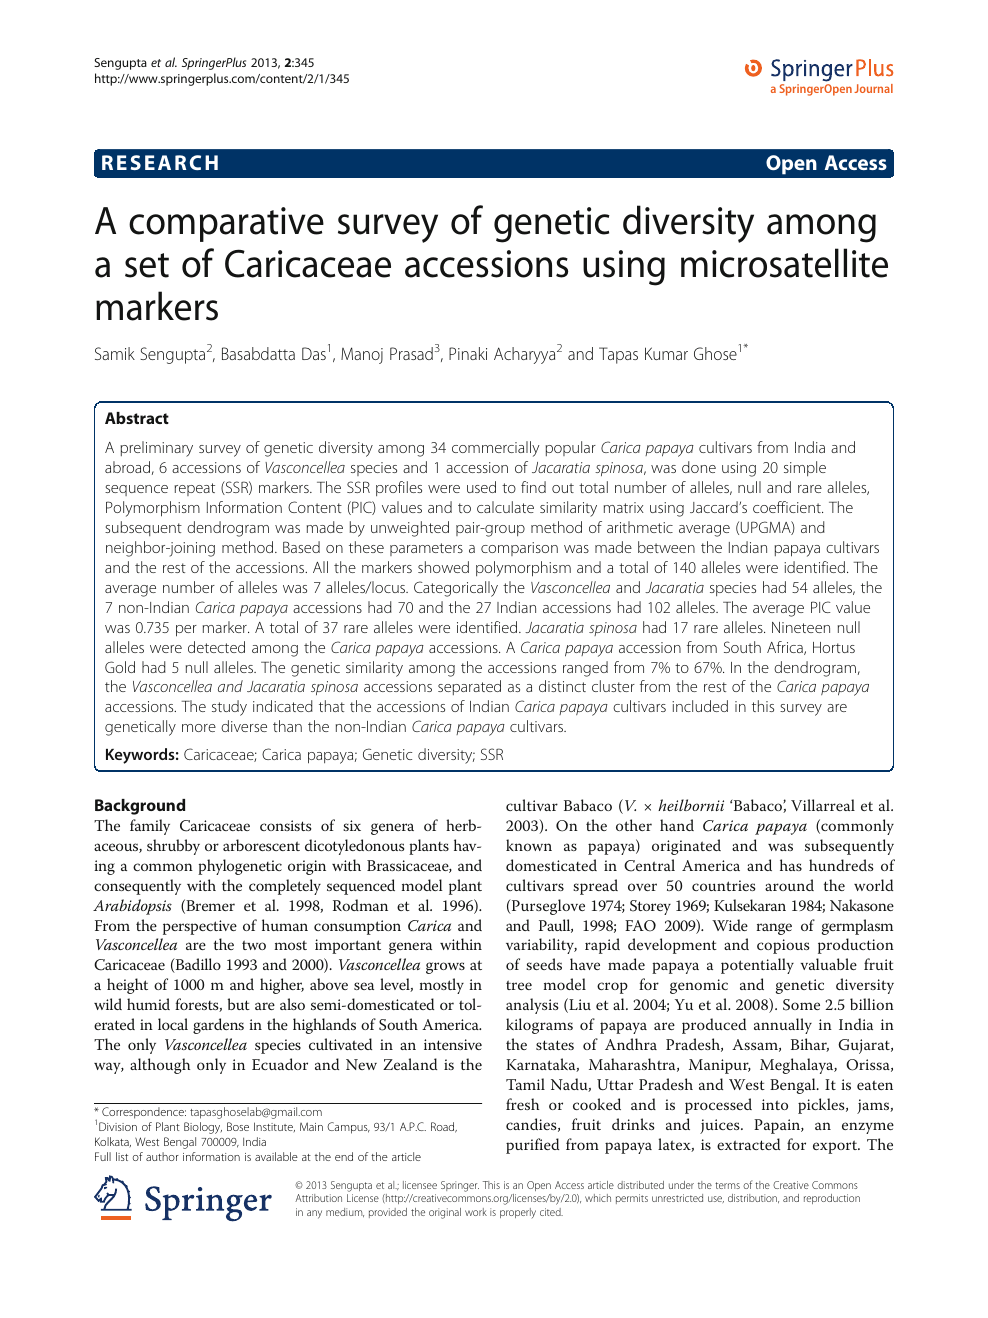 A comparative survey of genetic diversity among a set of Caricaceae